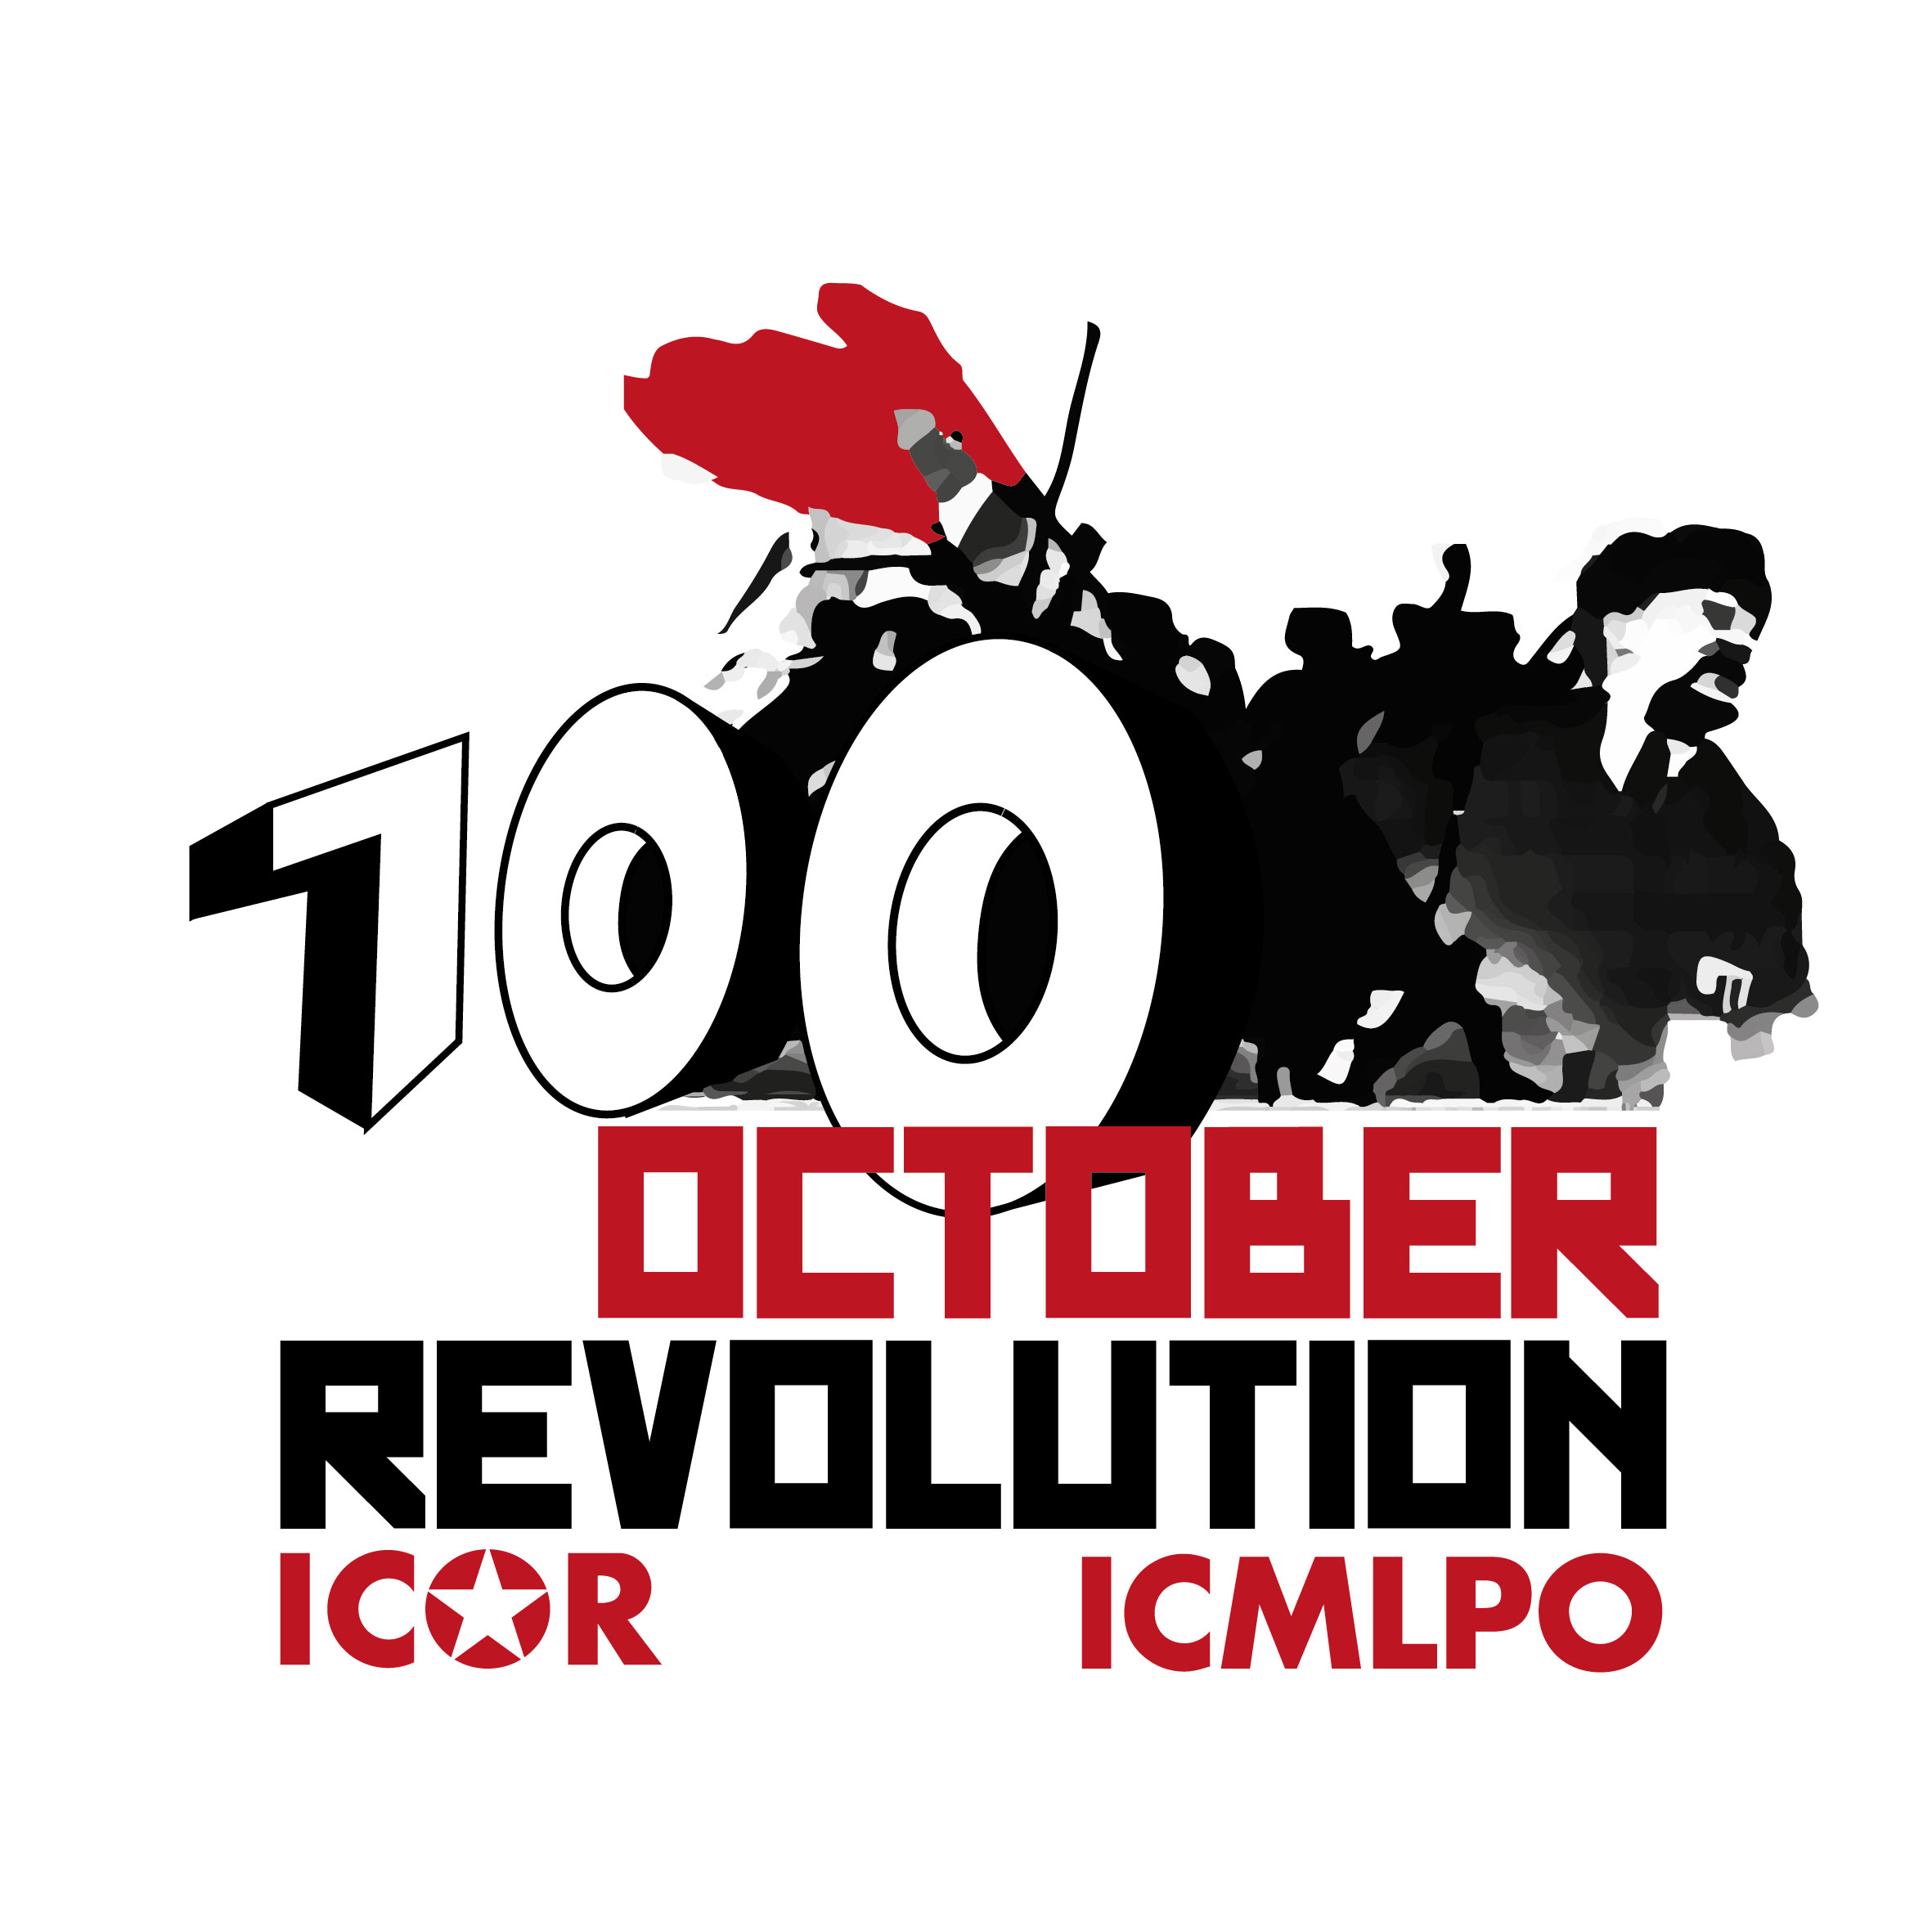 Lenin's strategy of the international revolution. The international counterrevolution brings the international revolution which began with the October Revolution to a standstill, because the objective and subjective prerequisites for a successful proletar